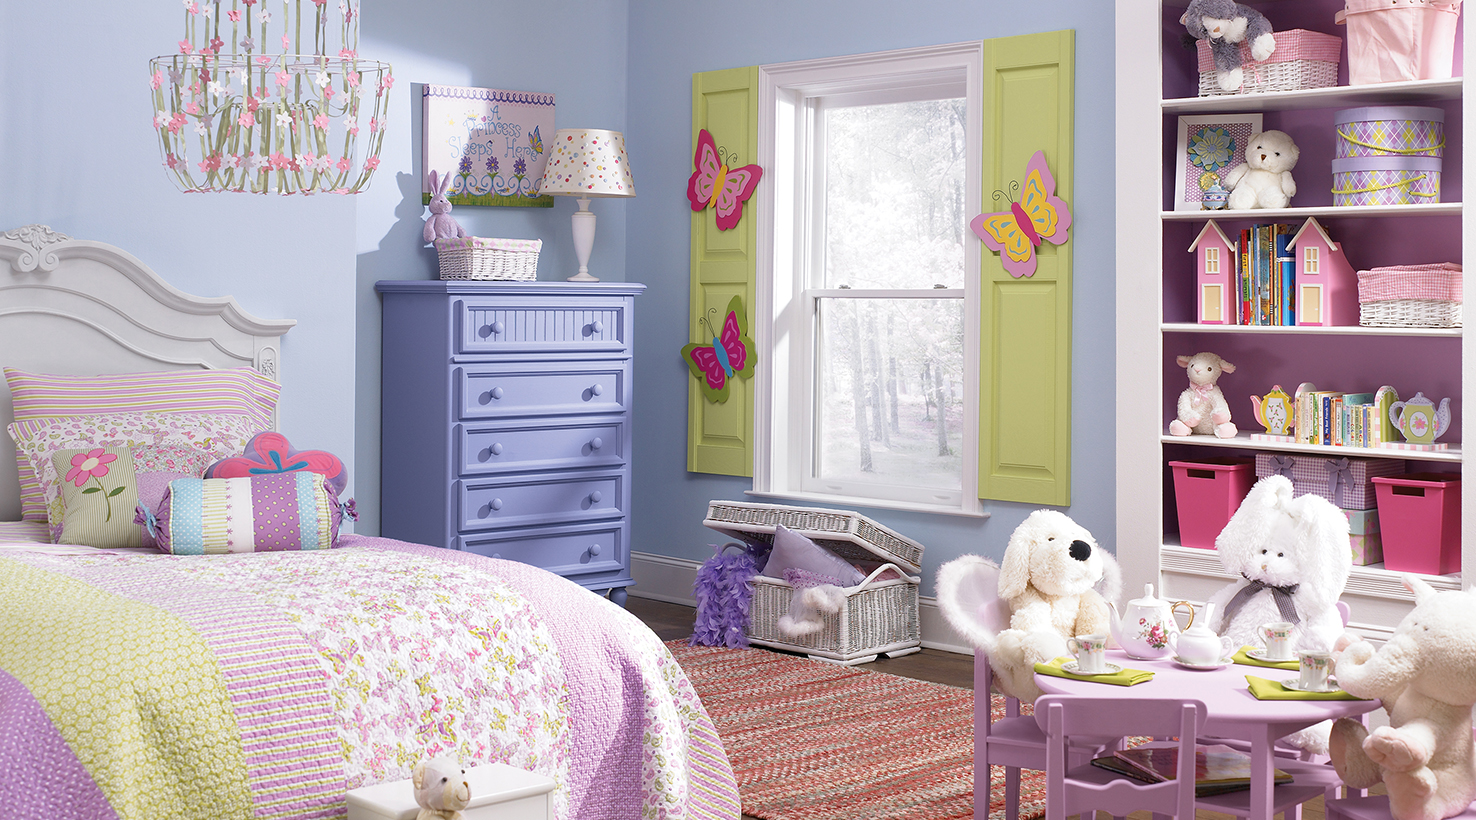 Bedrooms for girls purple and pink - Girls Room In Pastel Pink Purple And Green